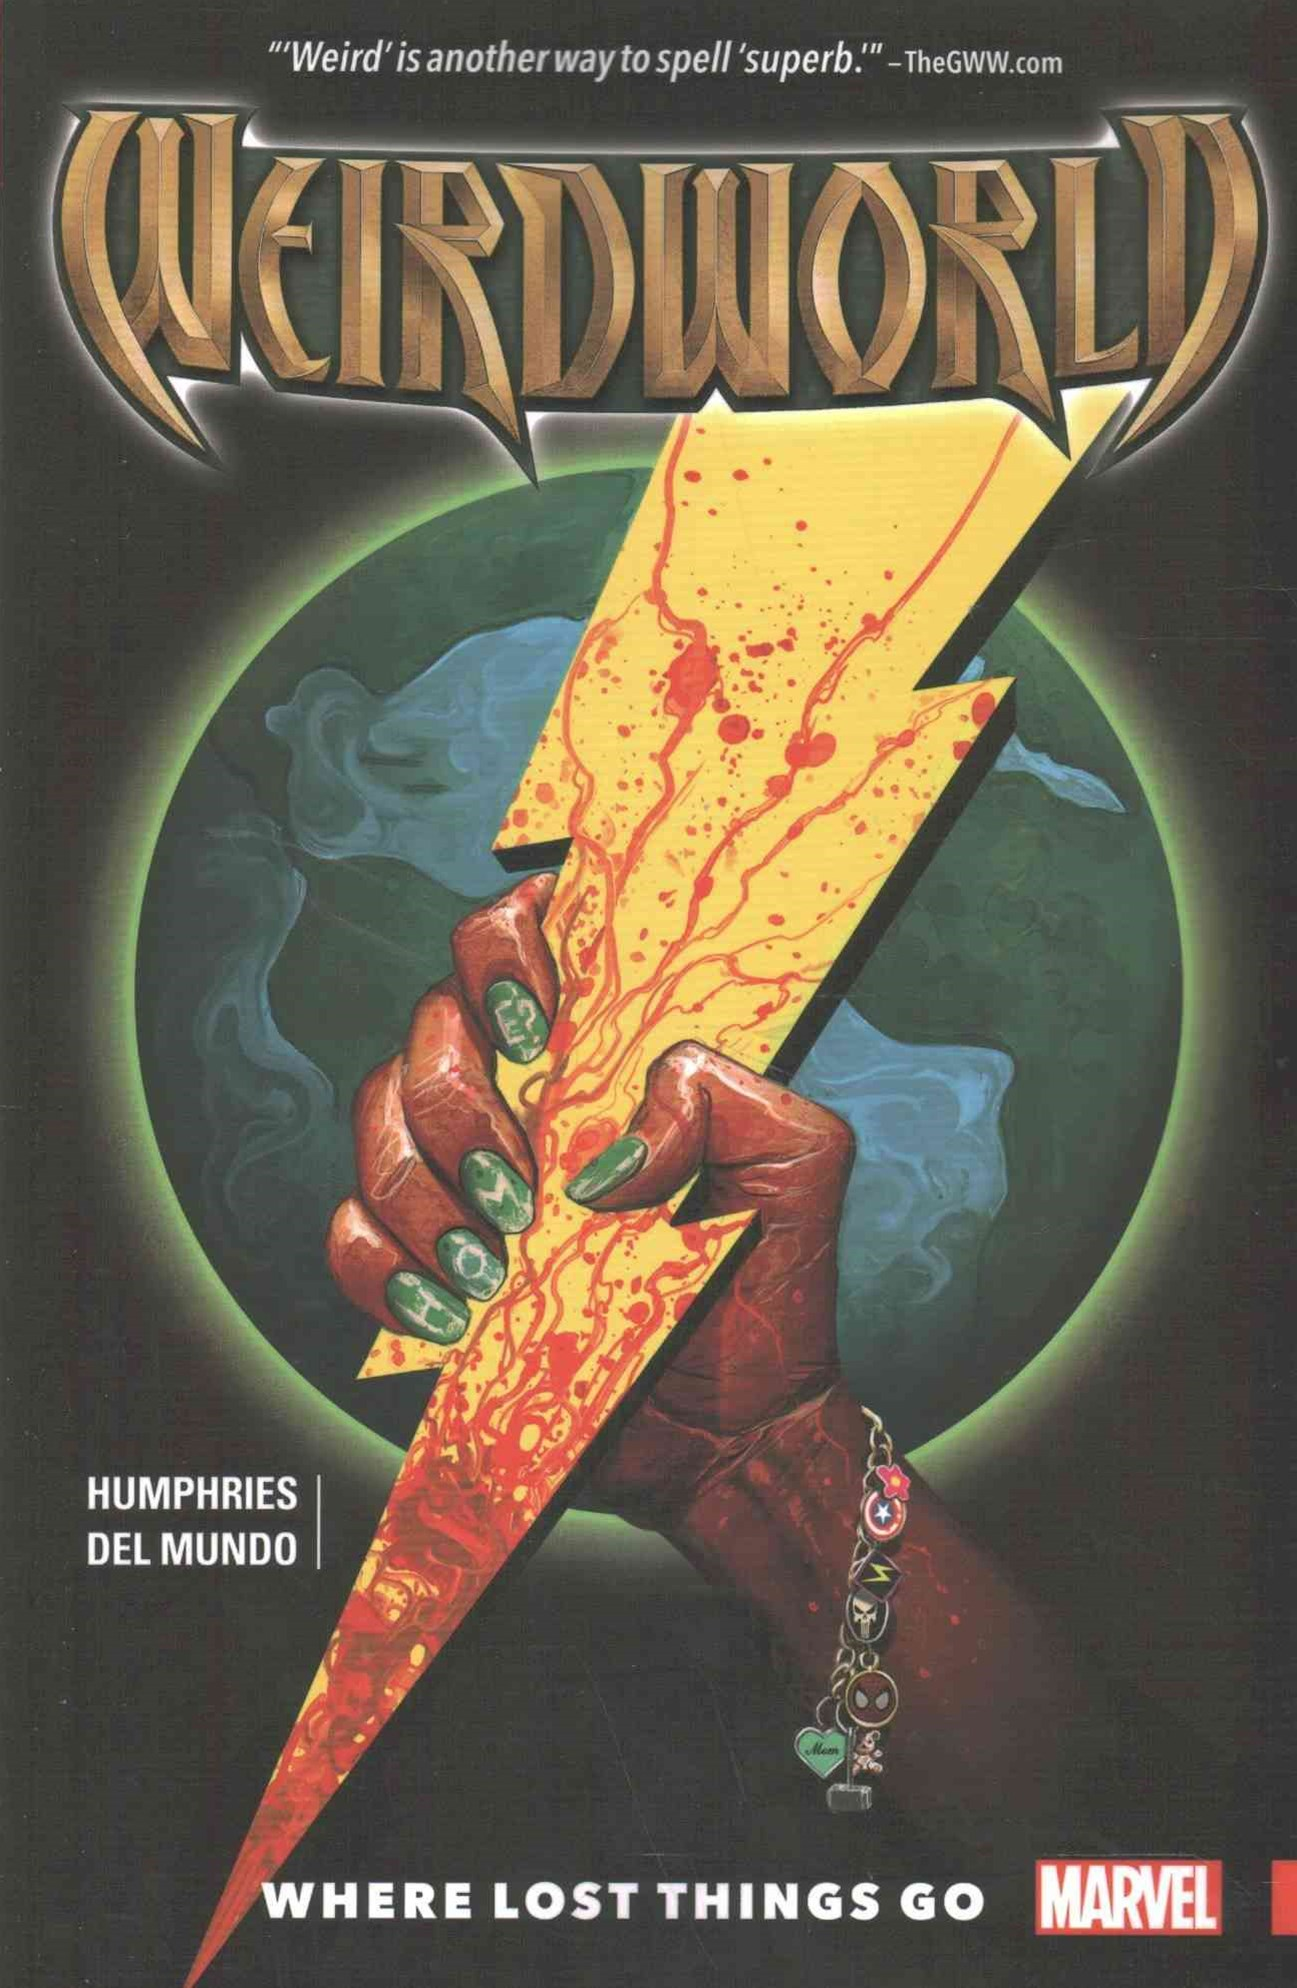 Weirdworld Vol. 1